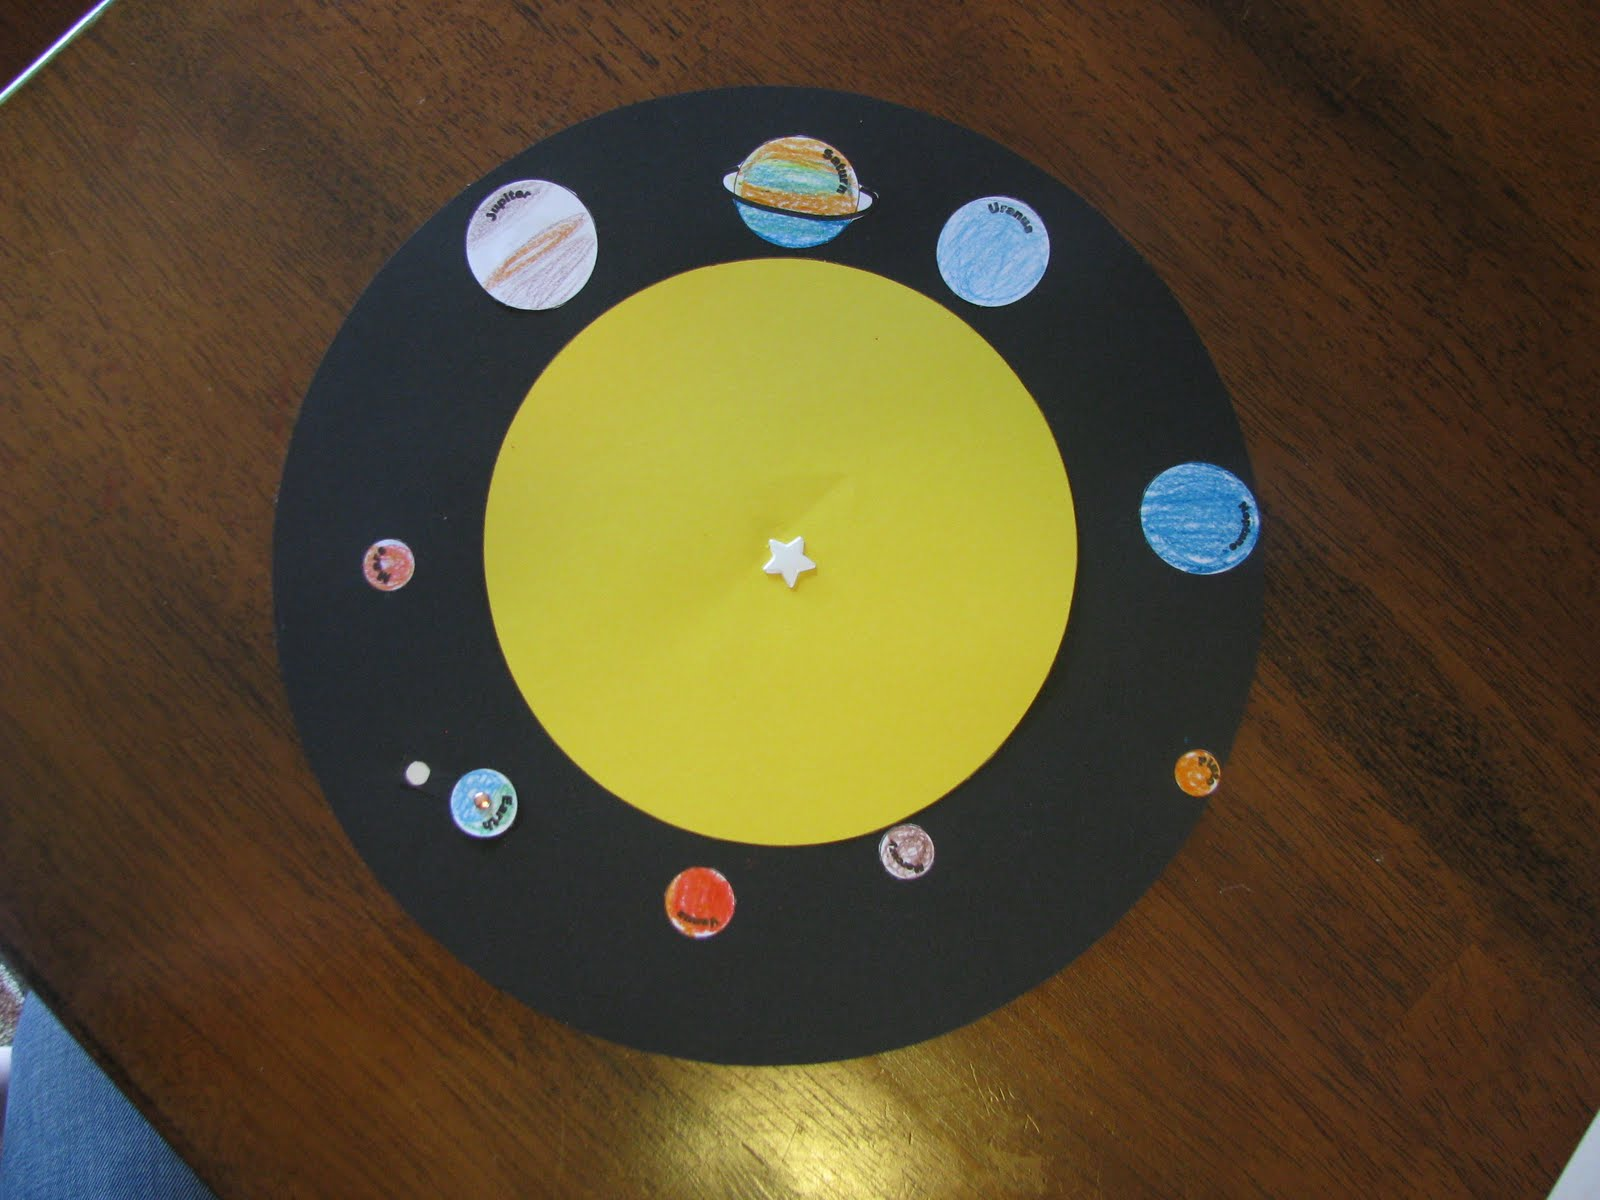 solar system project ideas - photo #23